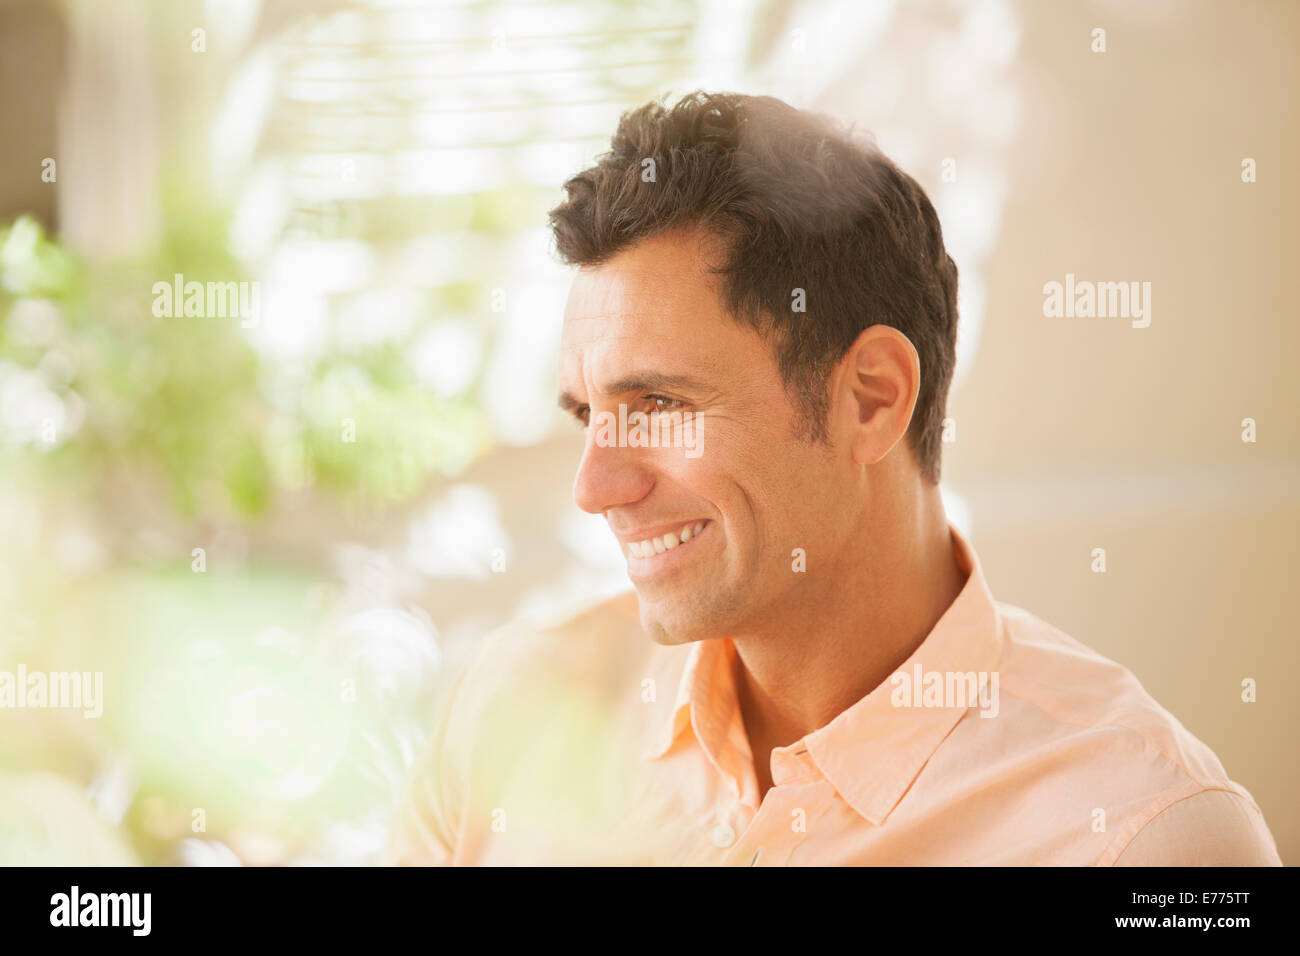 Man smiling indoors - Stock Image